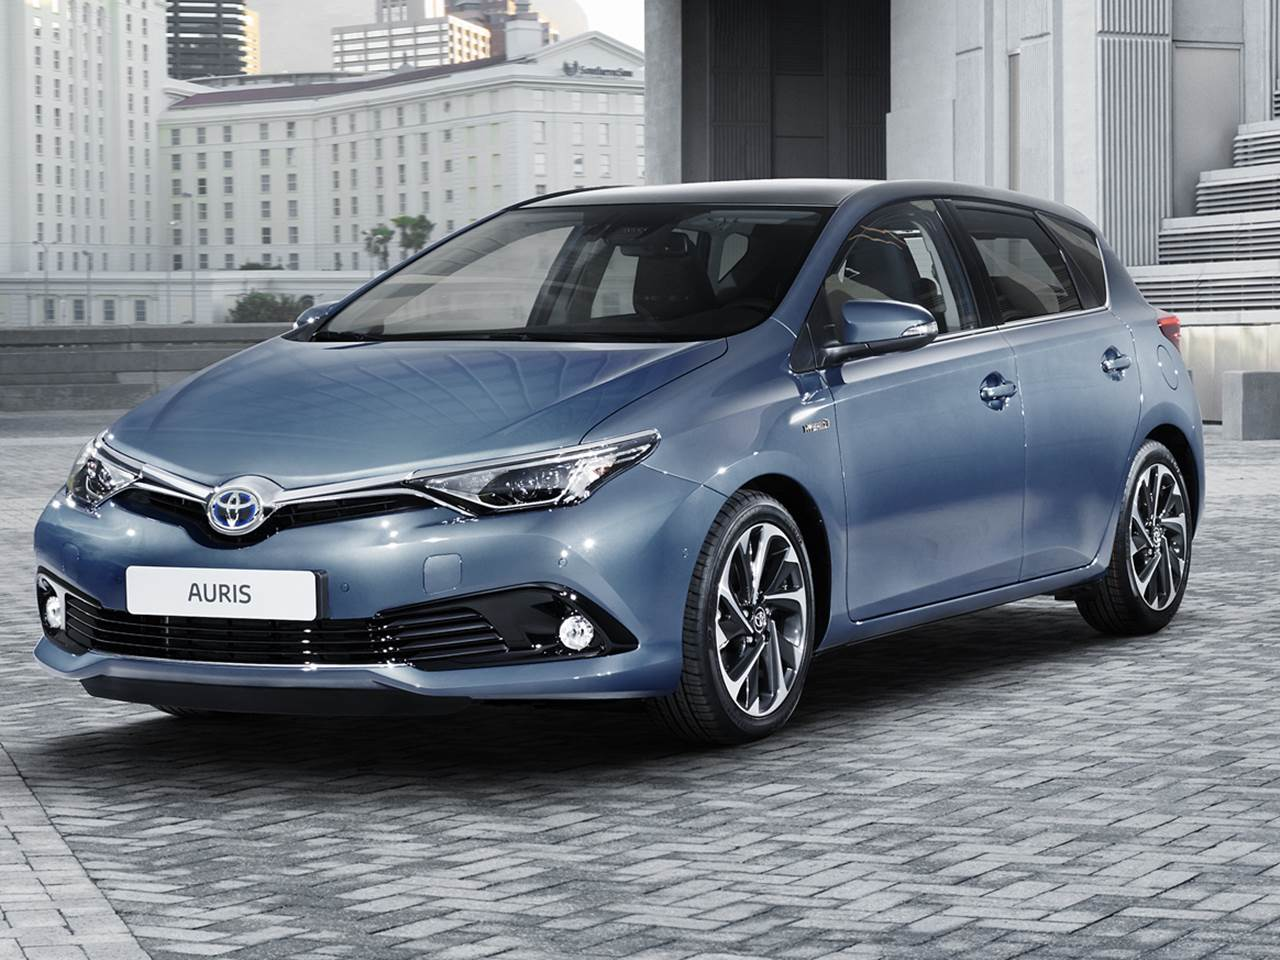 toyota auris 2015 recebe facelift para enfrentar focus e golf car blog br. Black Bedroom Furniture Sets. Home Design Ideas